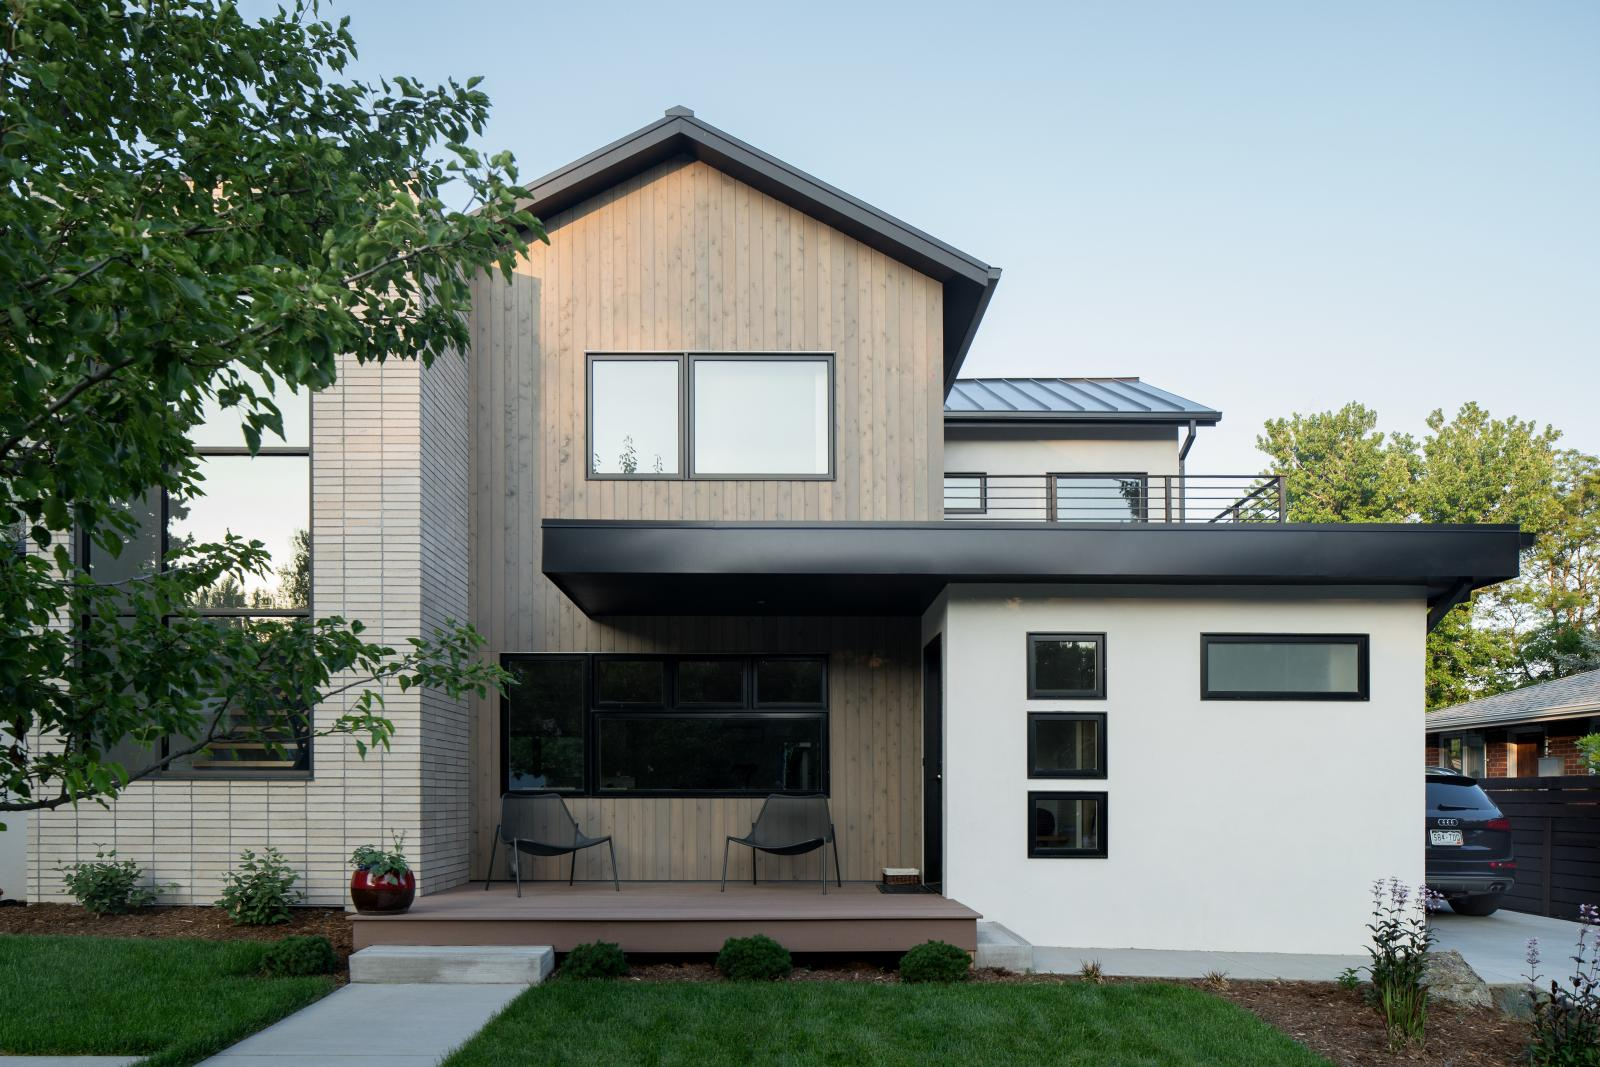 Adam's custom residential home project comes to life in Boulder, Colorado.